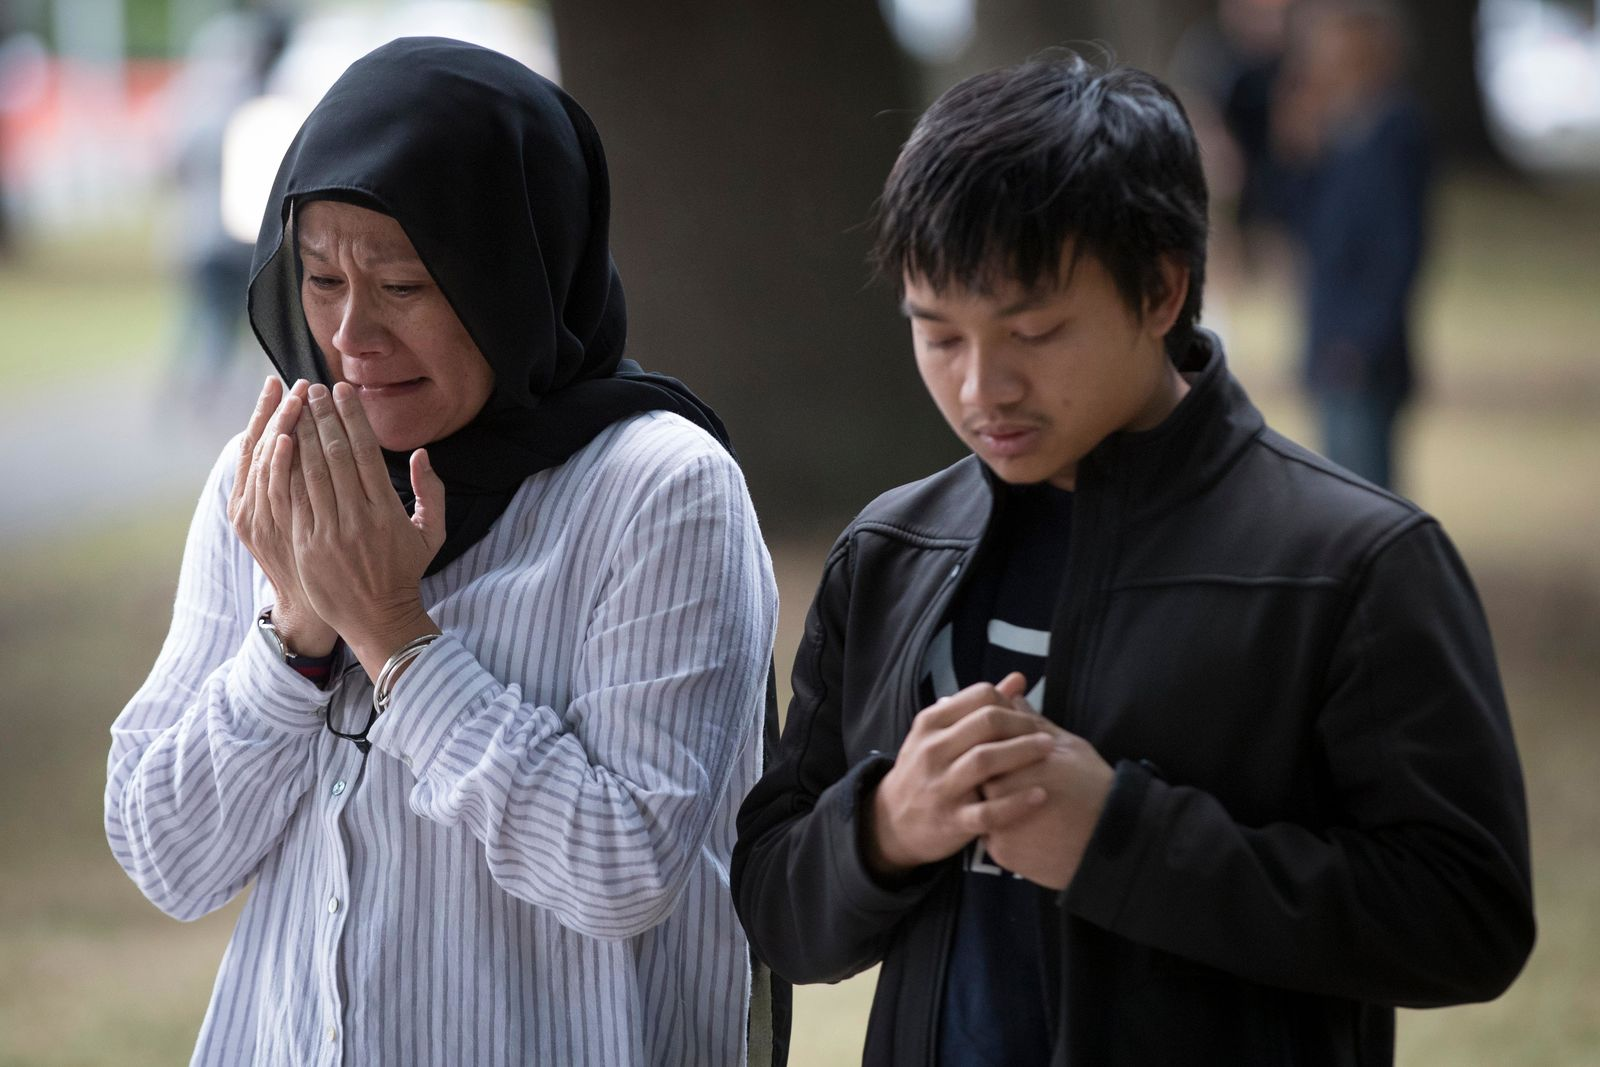 Mourners react at a memorial site for victims in last week's mass shooting near the Al Noor mosque in Christchurch, New Zealand, Tuesday, March 19, 2019. (AP Photo/Vincent Thian)